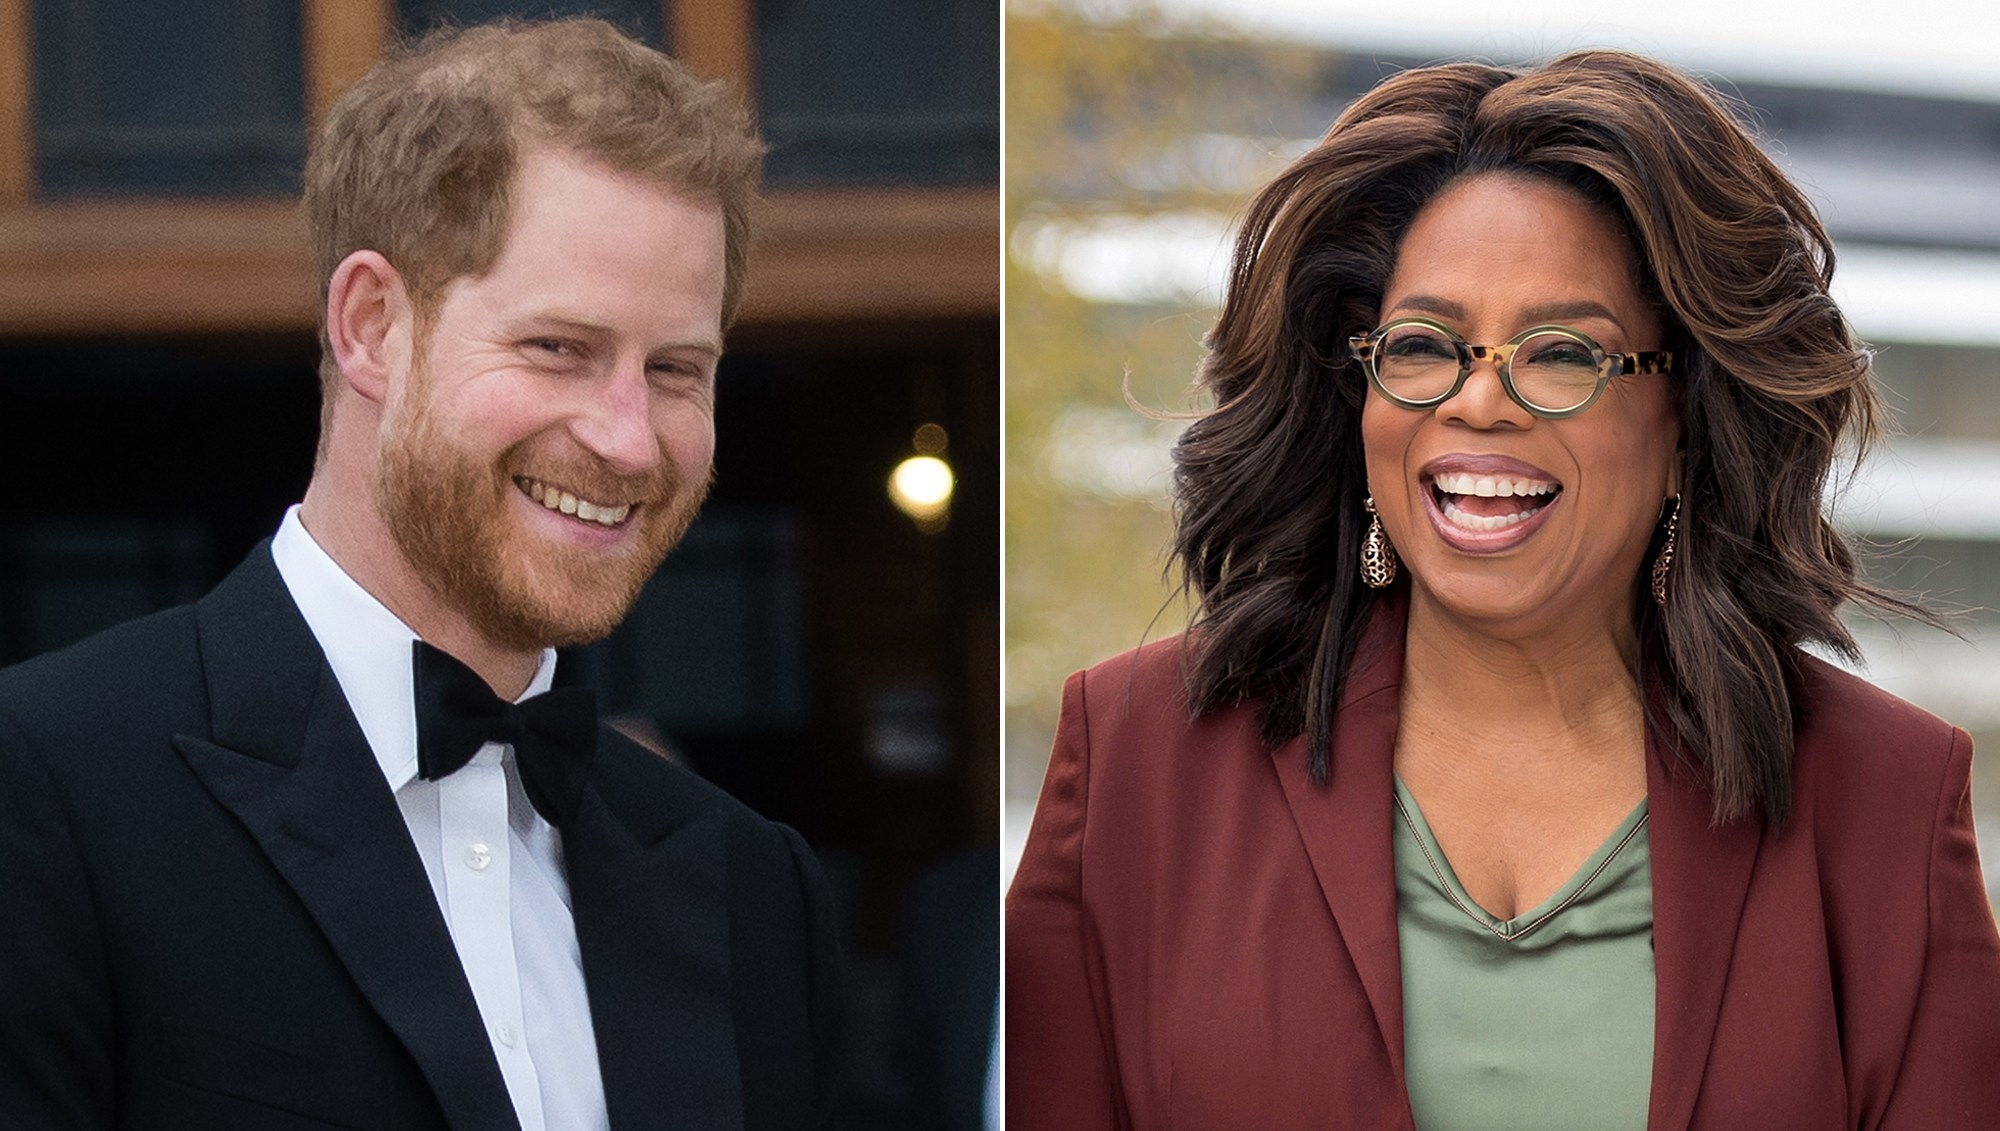 Prince Harry and Oprah Winfrey Team Up for Apple TV Series on Mental Health